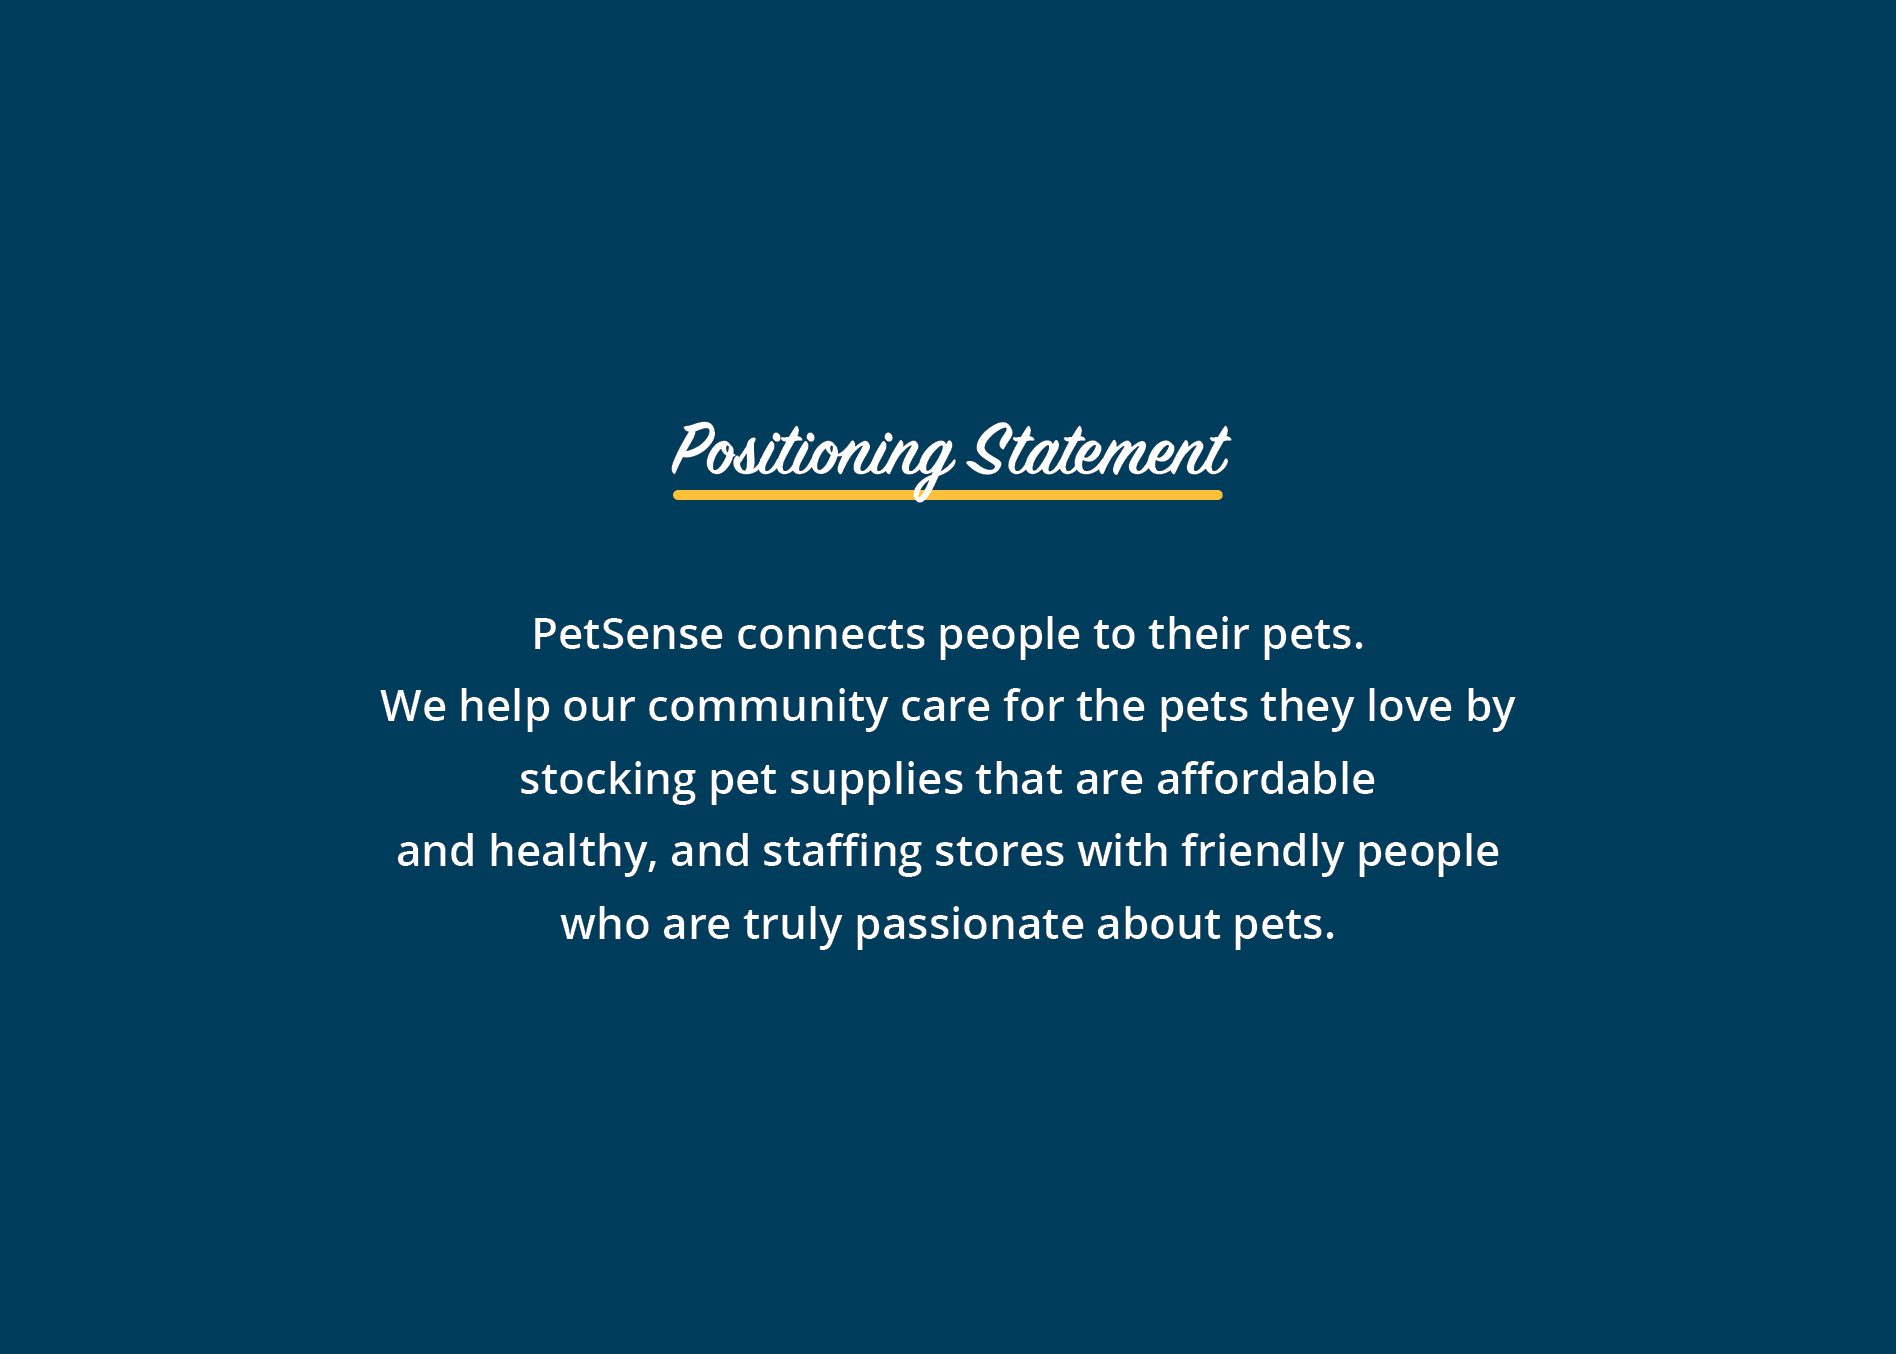 corporate positioning statement